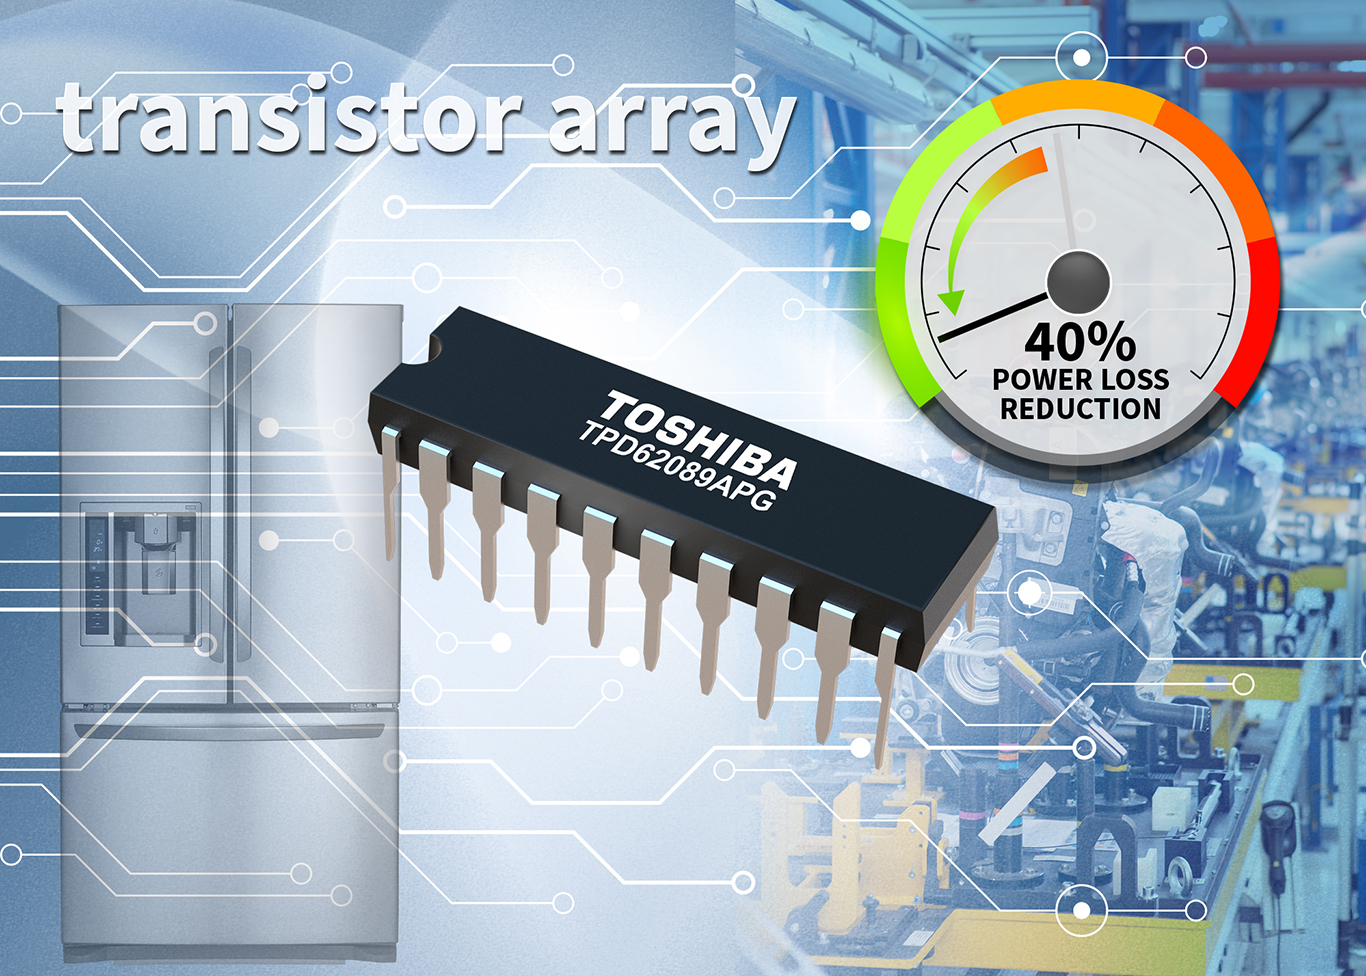 Toshiba launches transistor array for HV transmitters